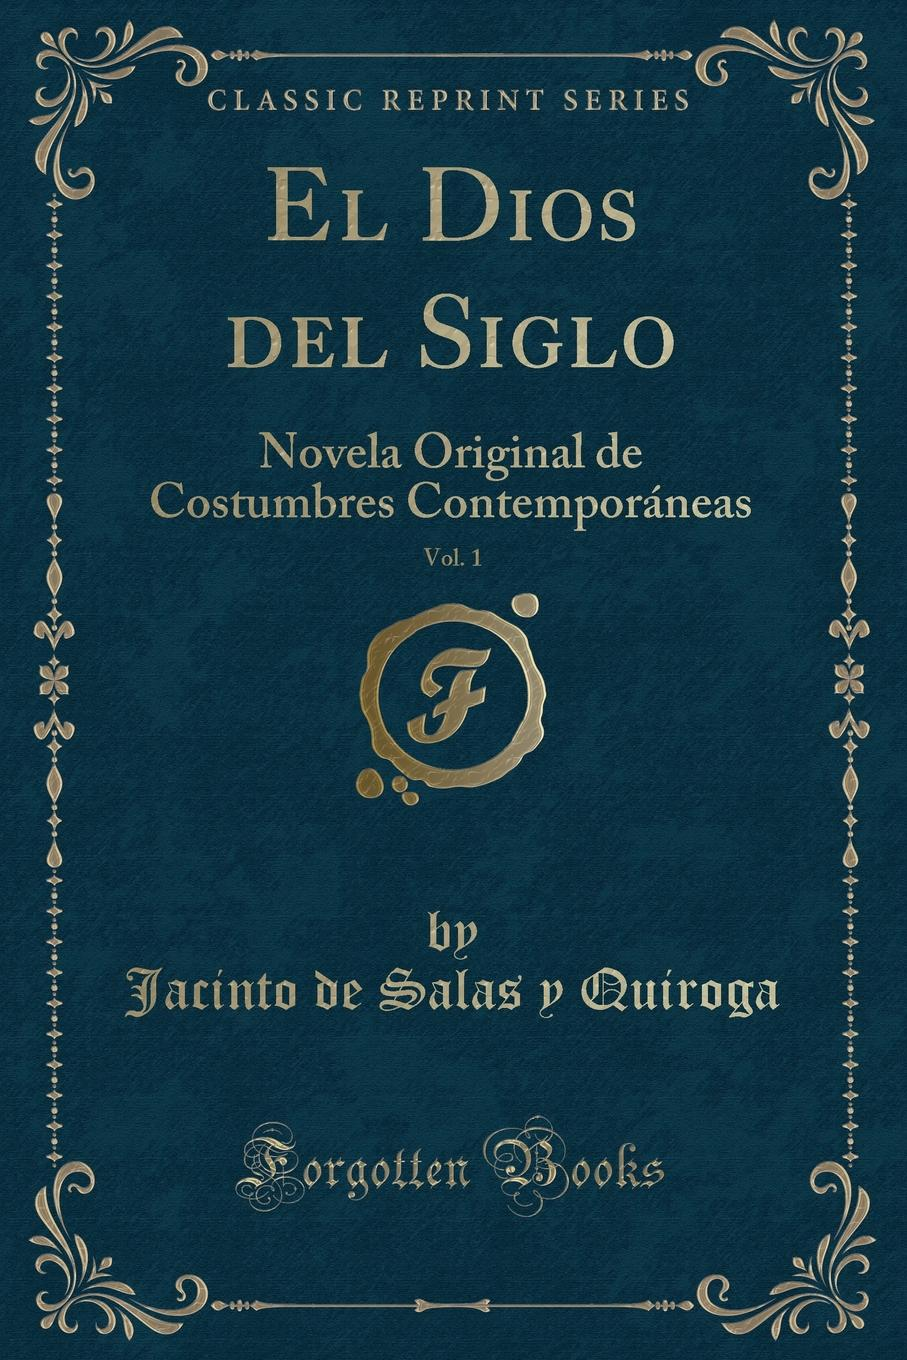 Jacinto de Salas y Quiroga El Dios del Siglo, Vol. 1. Novela Original de Costumbres Contemporaneas (Classic Reprint) new deep work book for worker and adult how to effectively use every bit of brain power successful business inspirational book